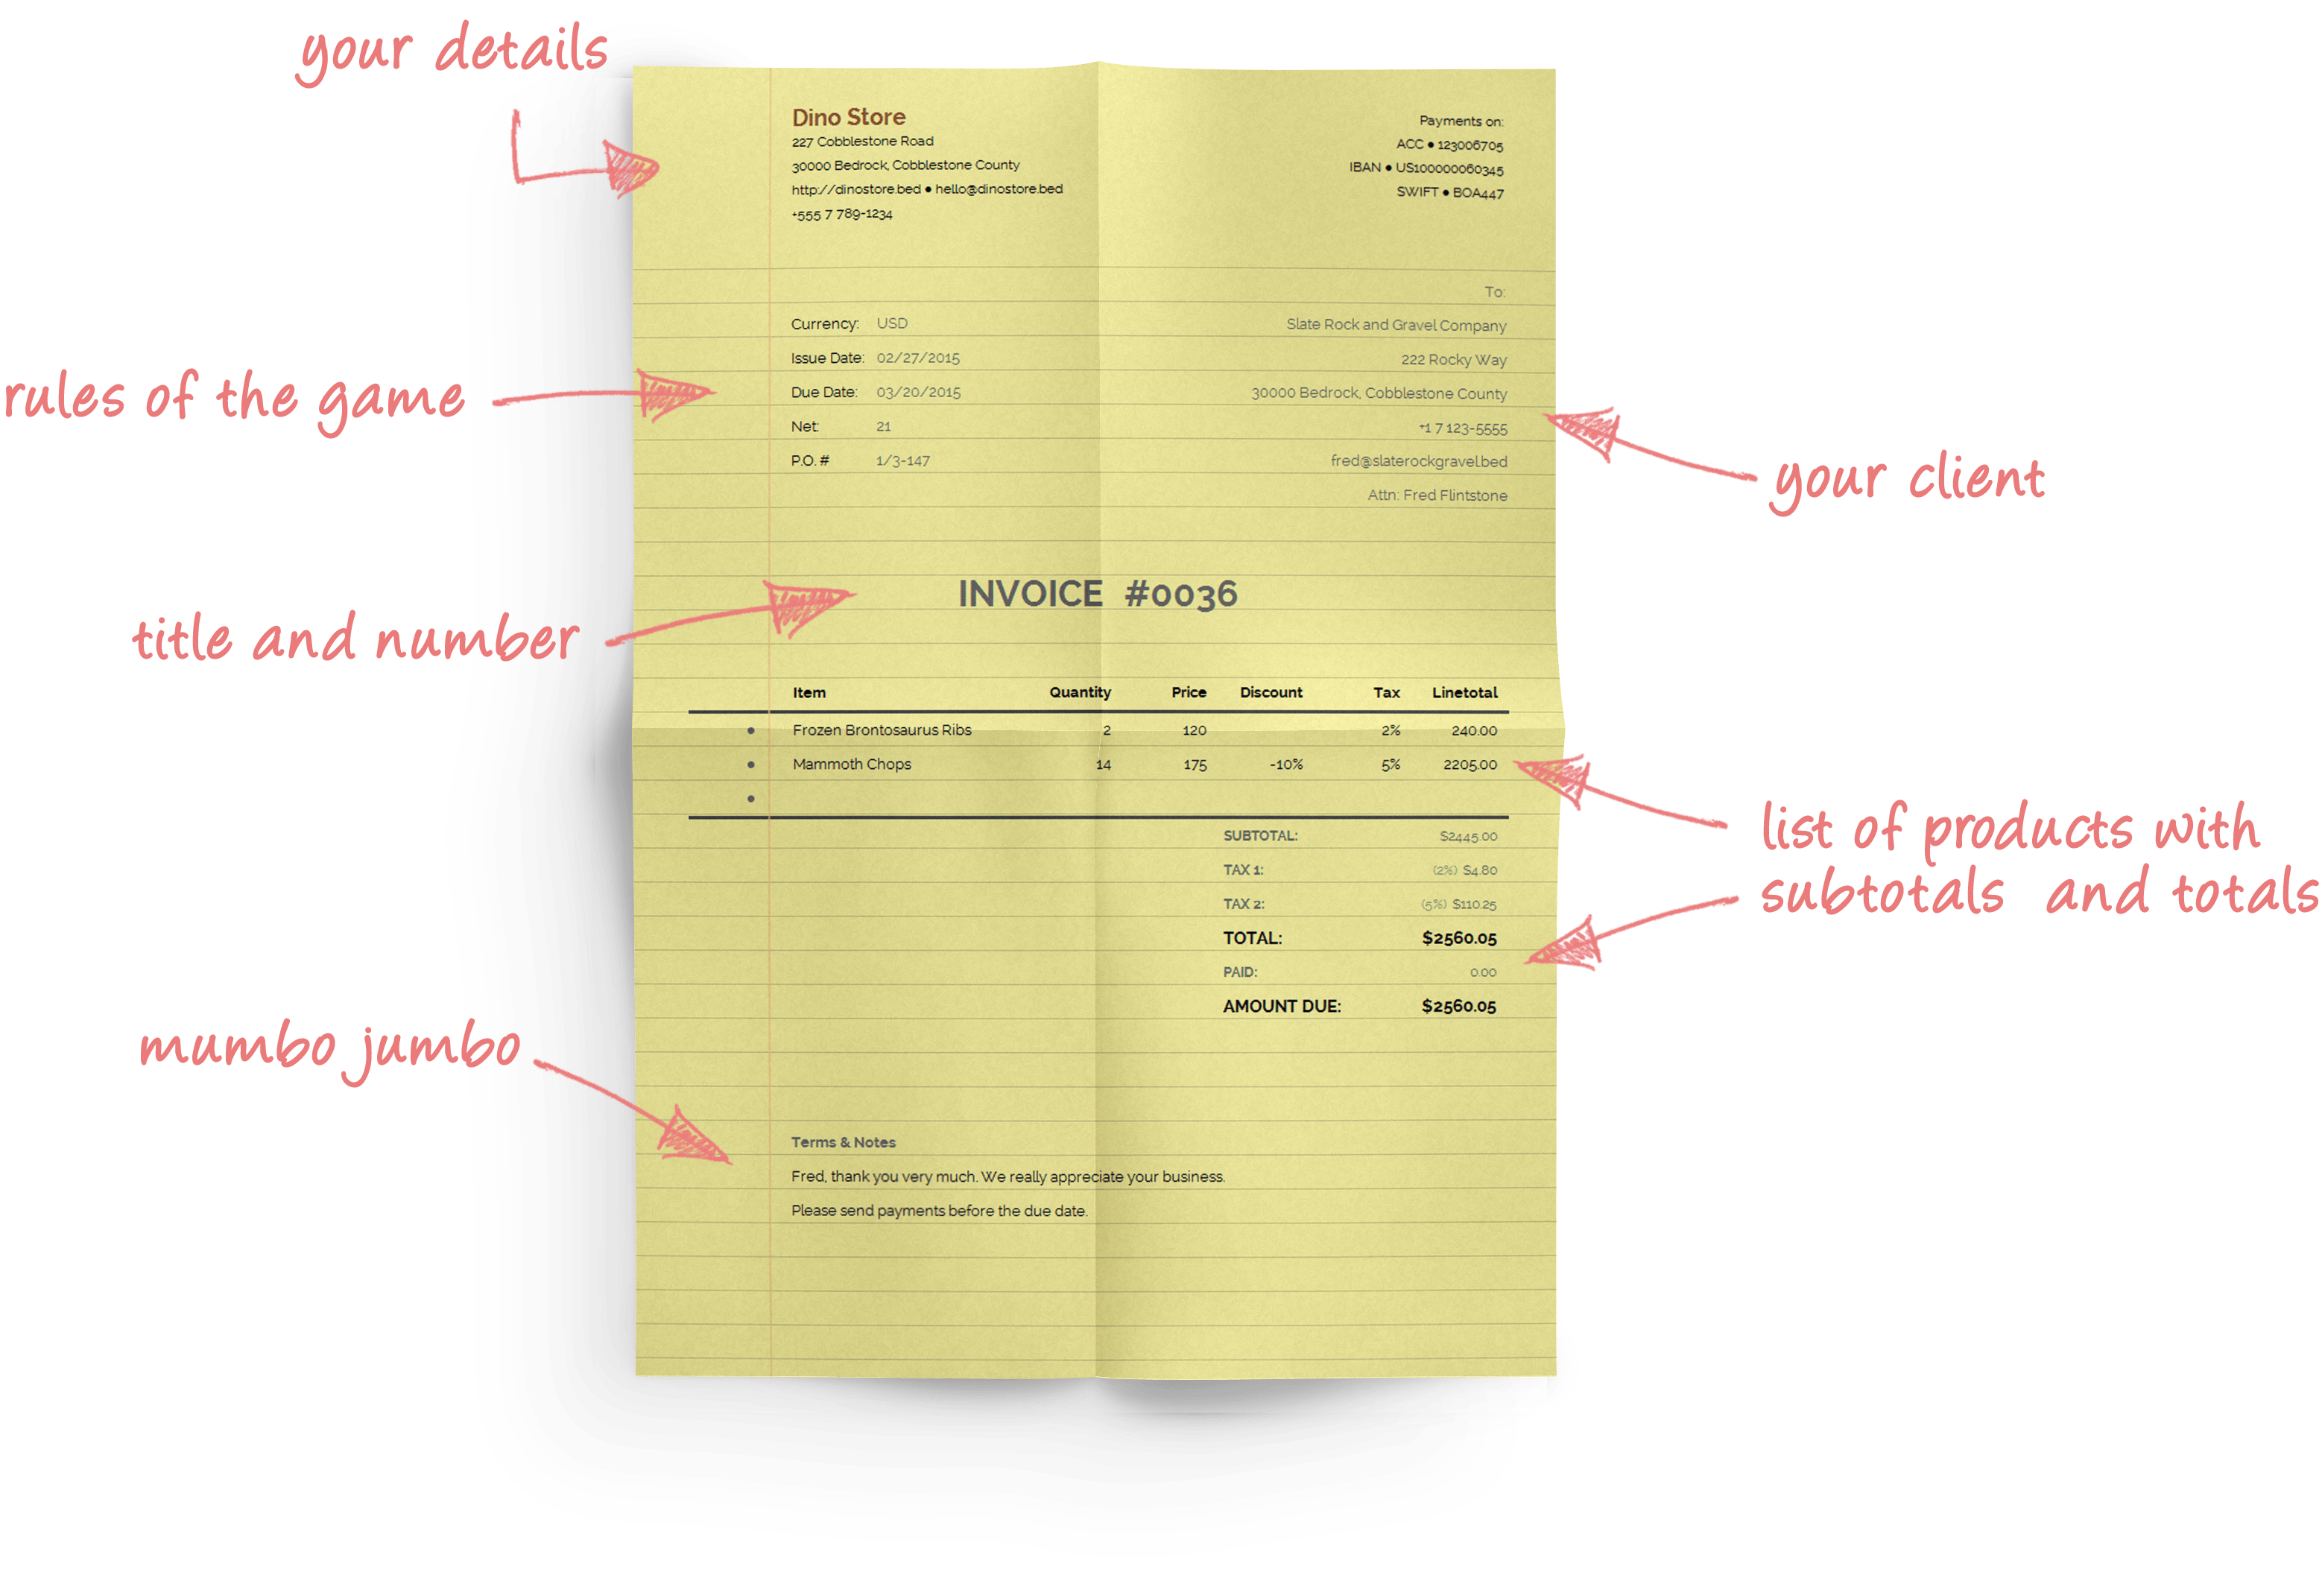 How to Write Invoices the Right Way   Online Invoicing Service For     Invoice Explanation Start creating automated